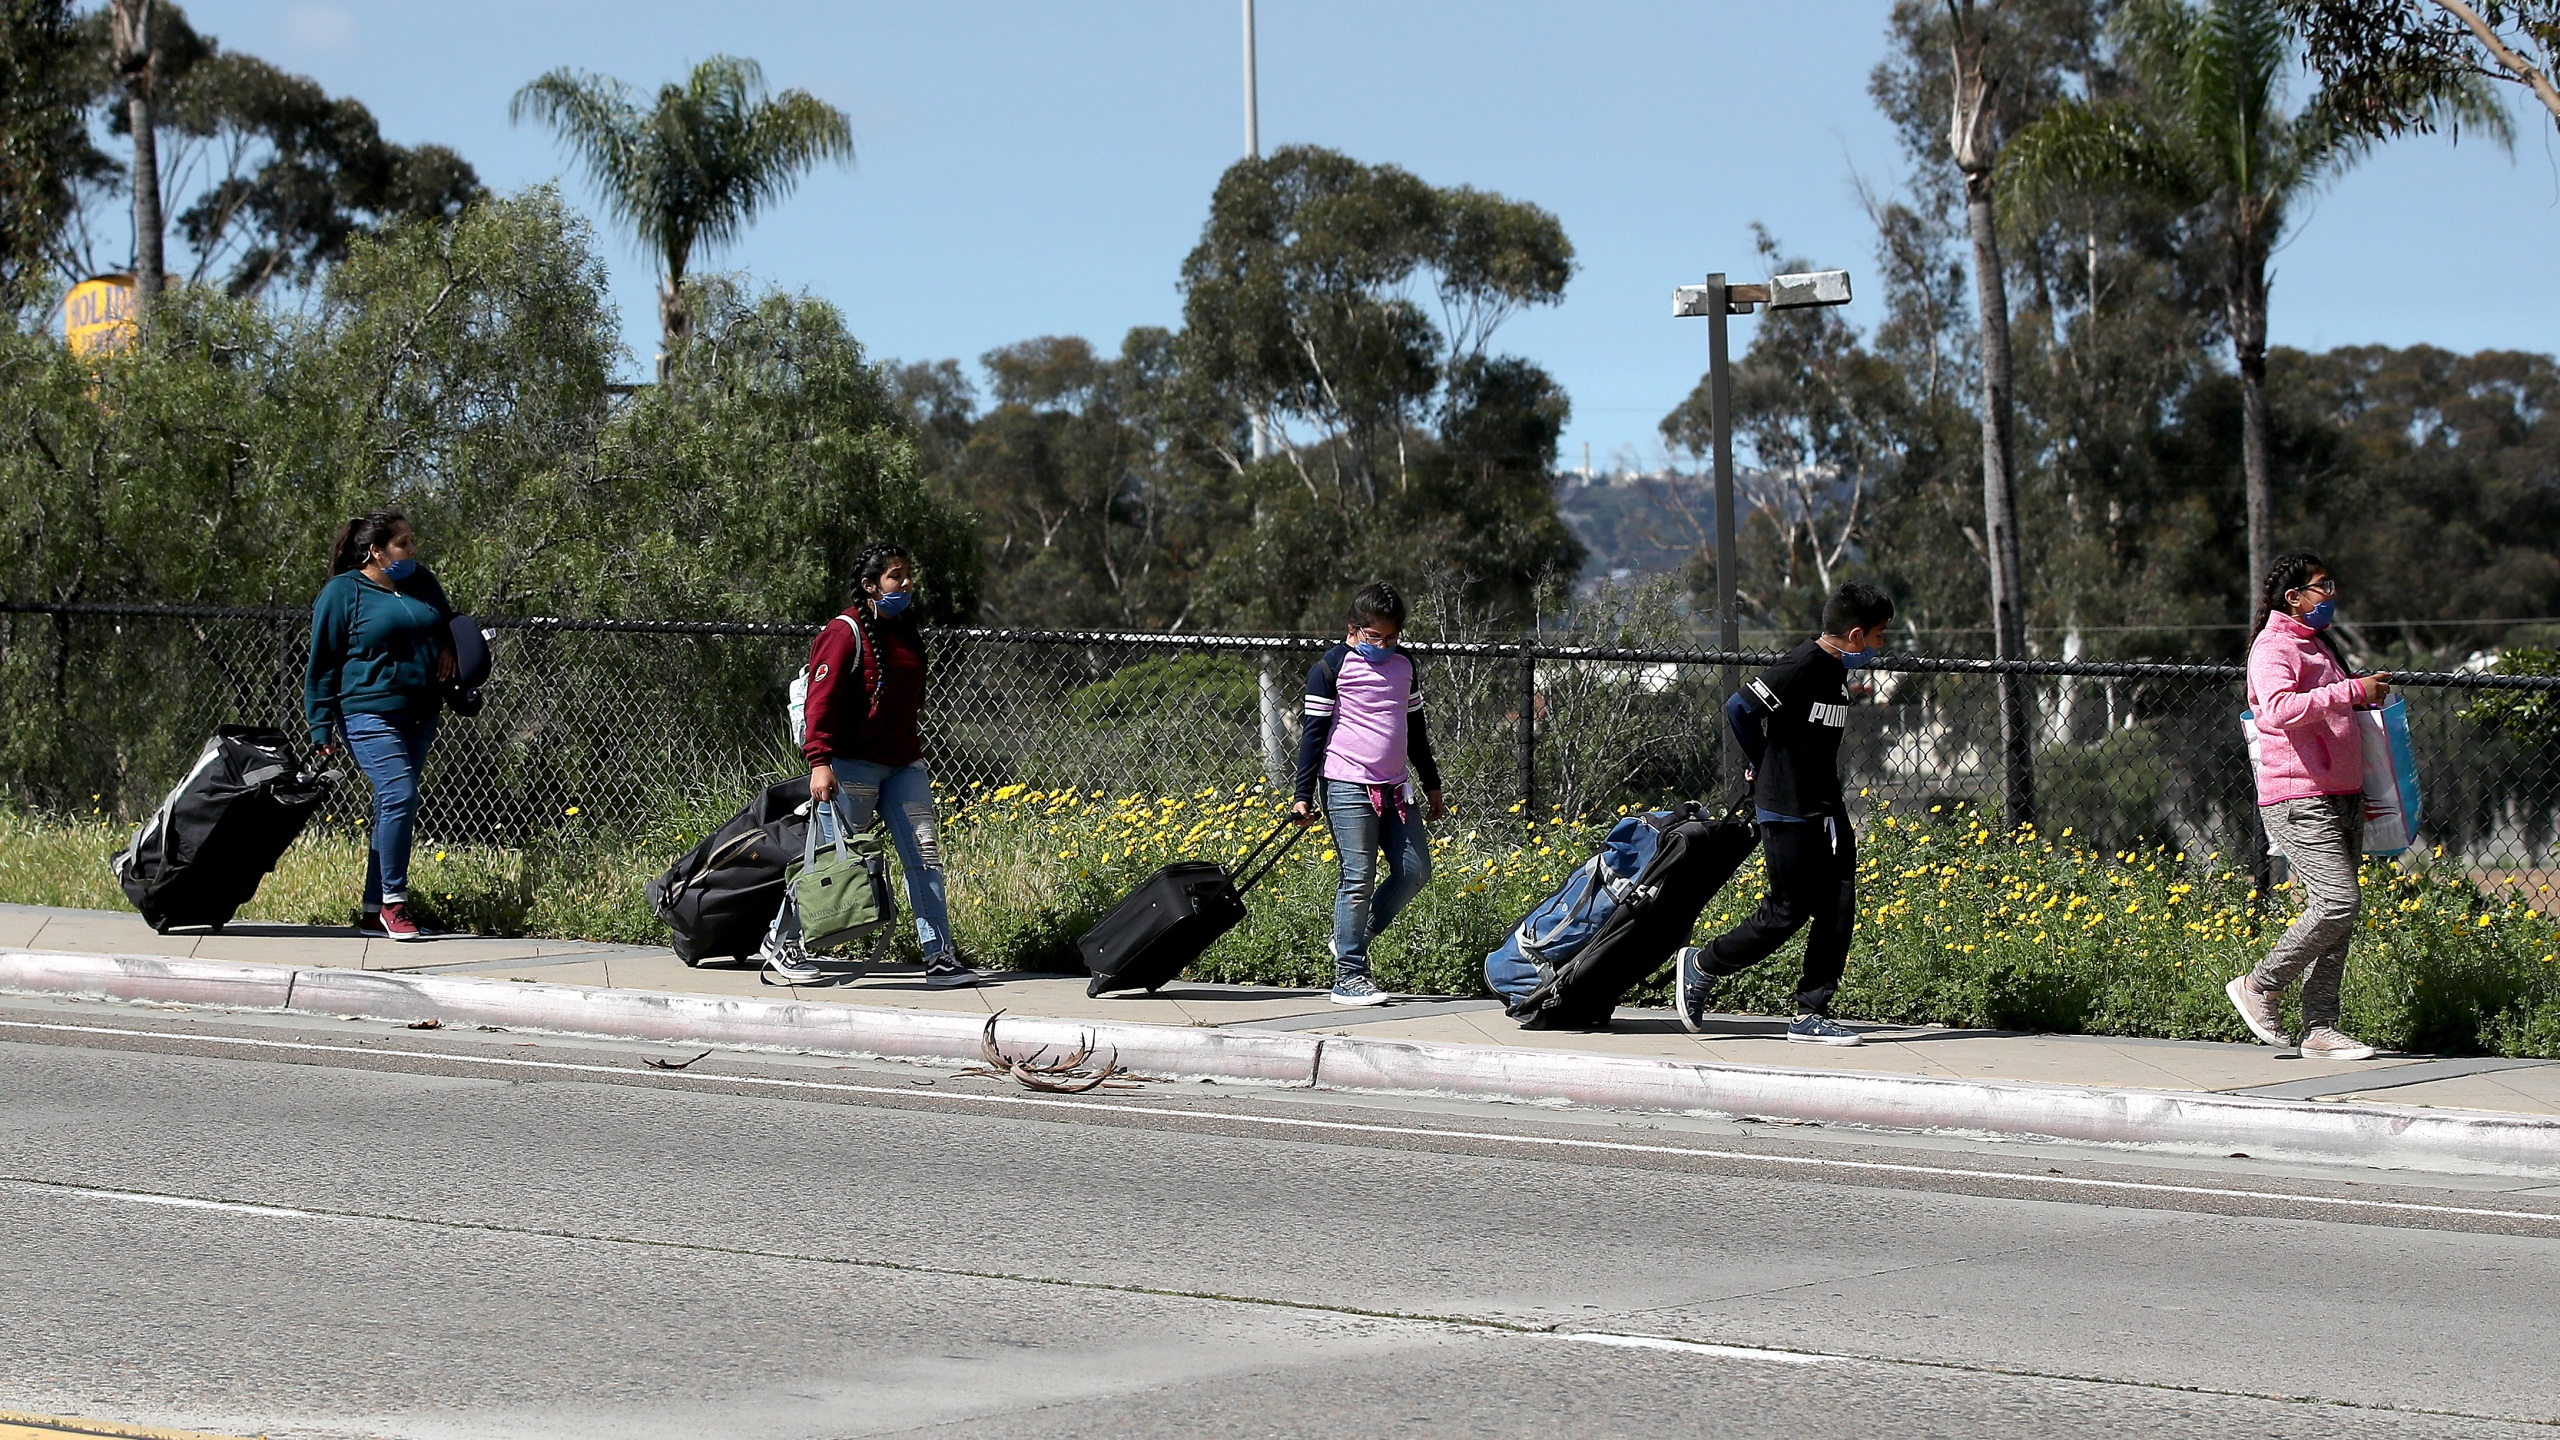 A family walks towards the U.S. Customs and Border Protection at the San Ysidro Port of Entry on March 21, 2020 in San Diego. (Sean M. Haffey/Getty Images)